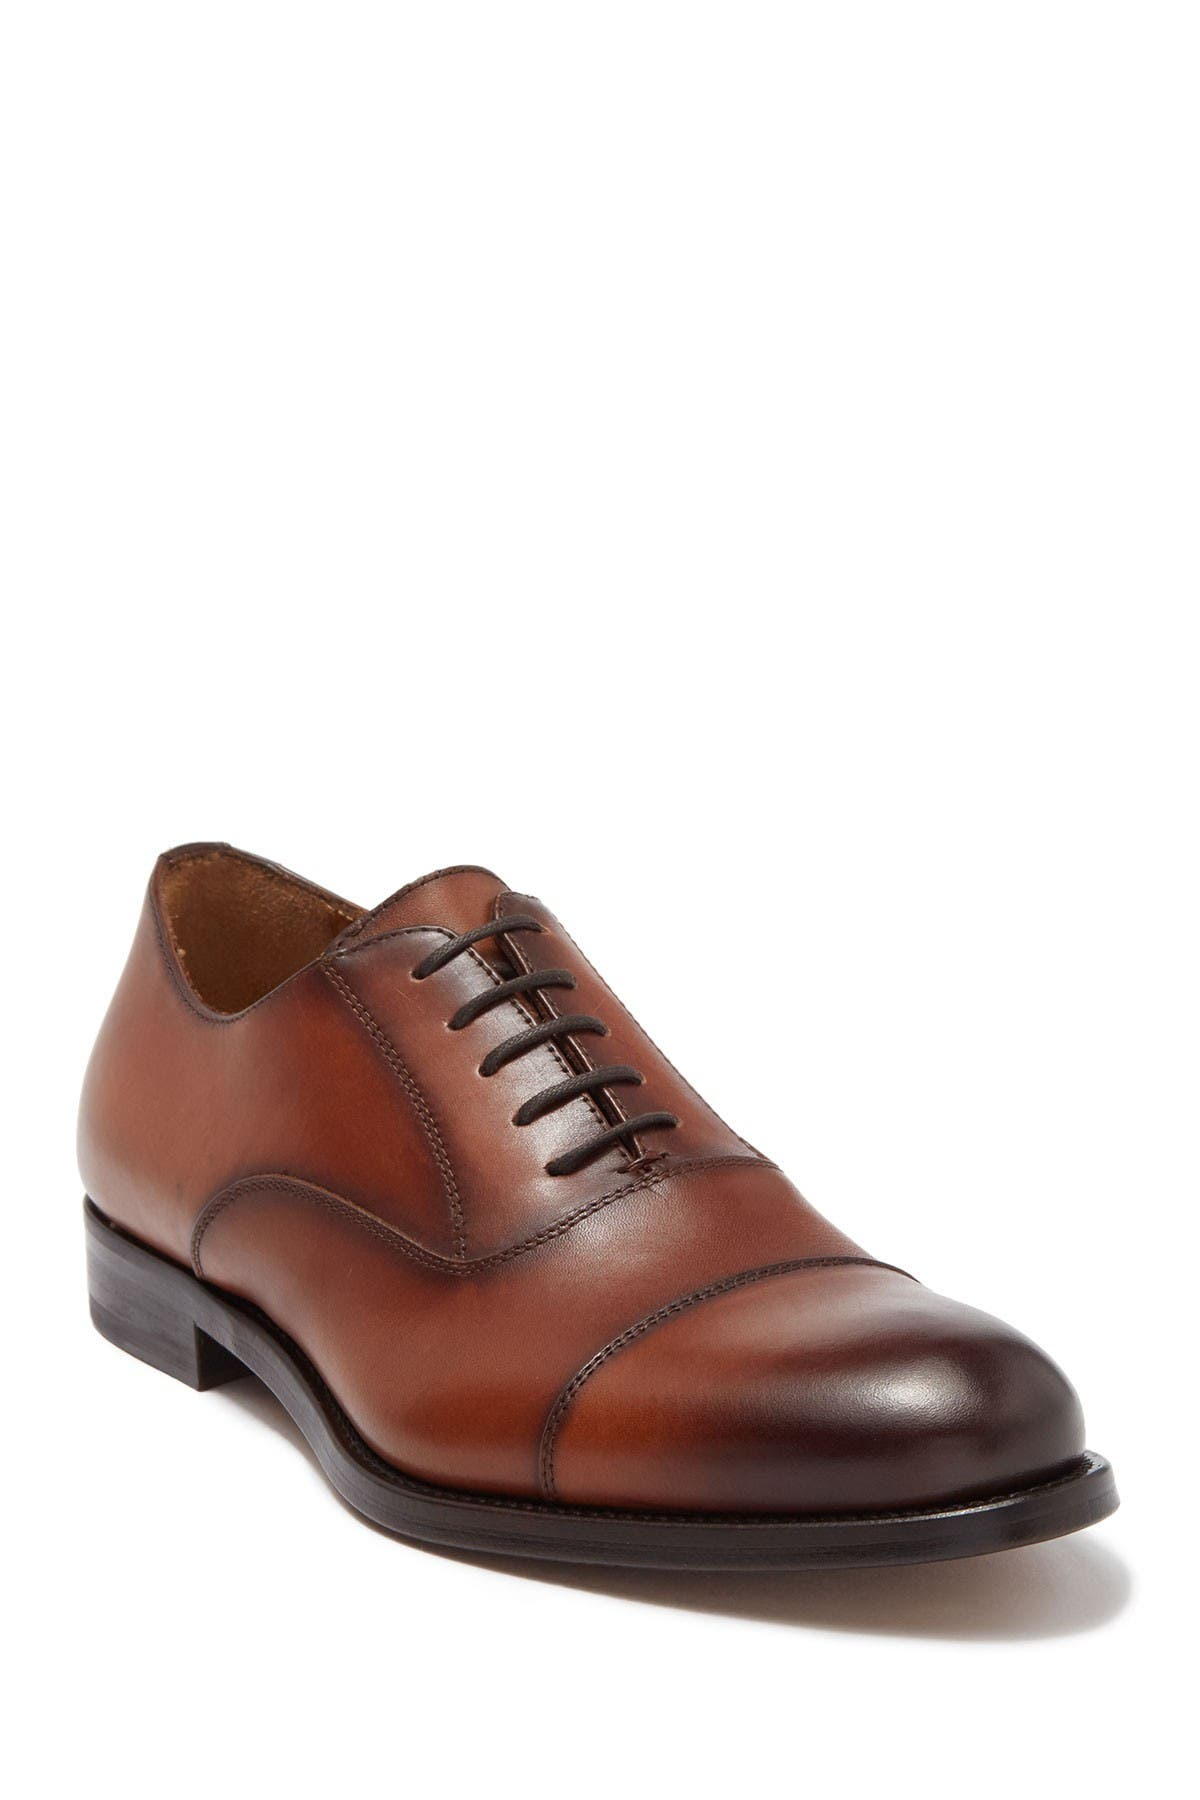 Image of Antonio Maurizi Burnished Leather Cap Toe Oxford